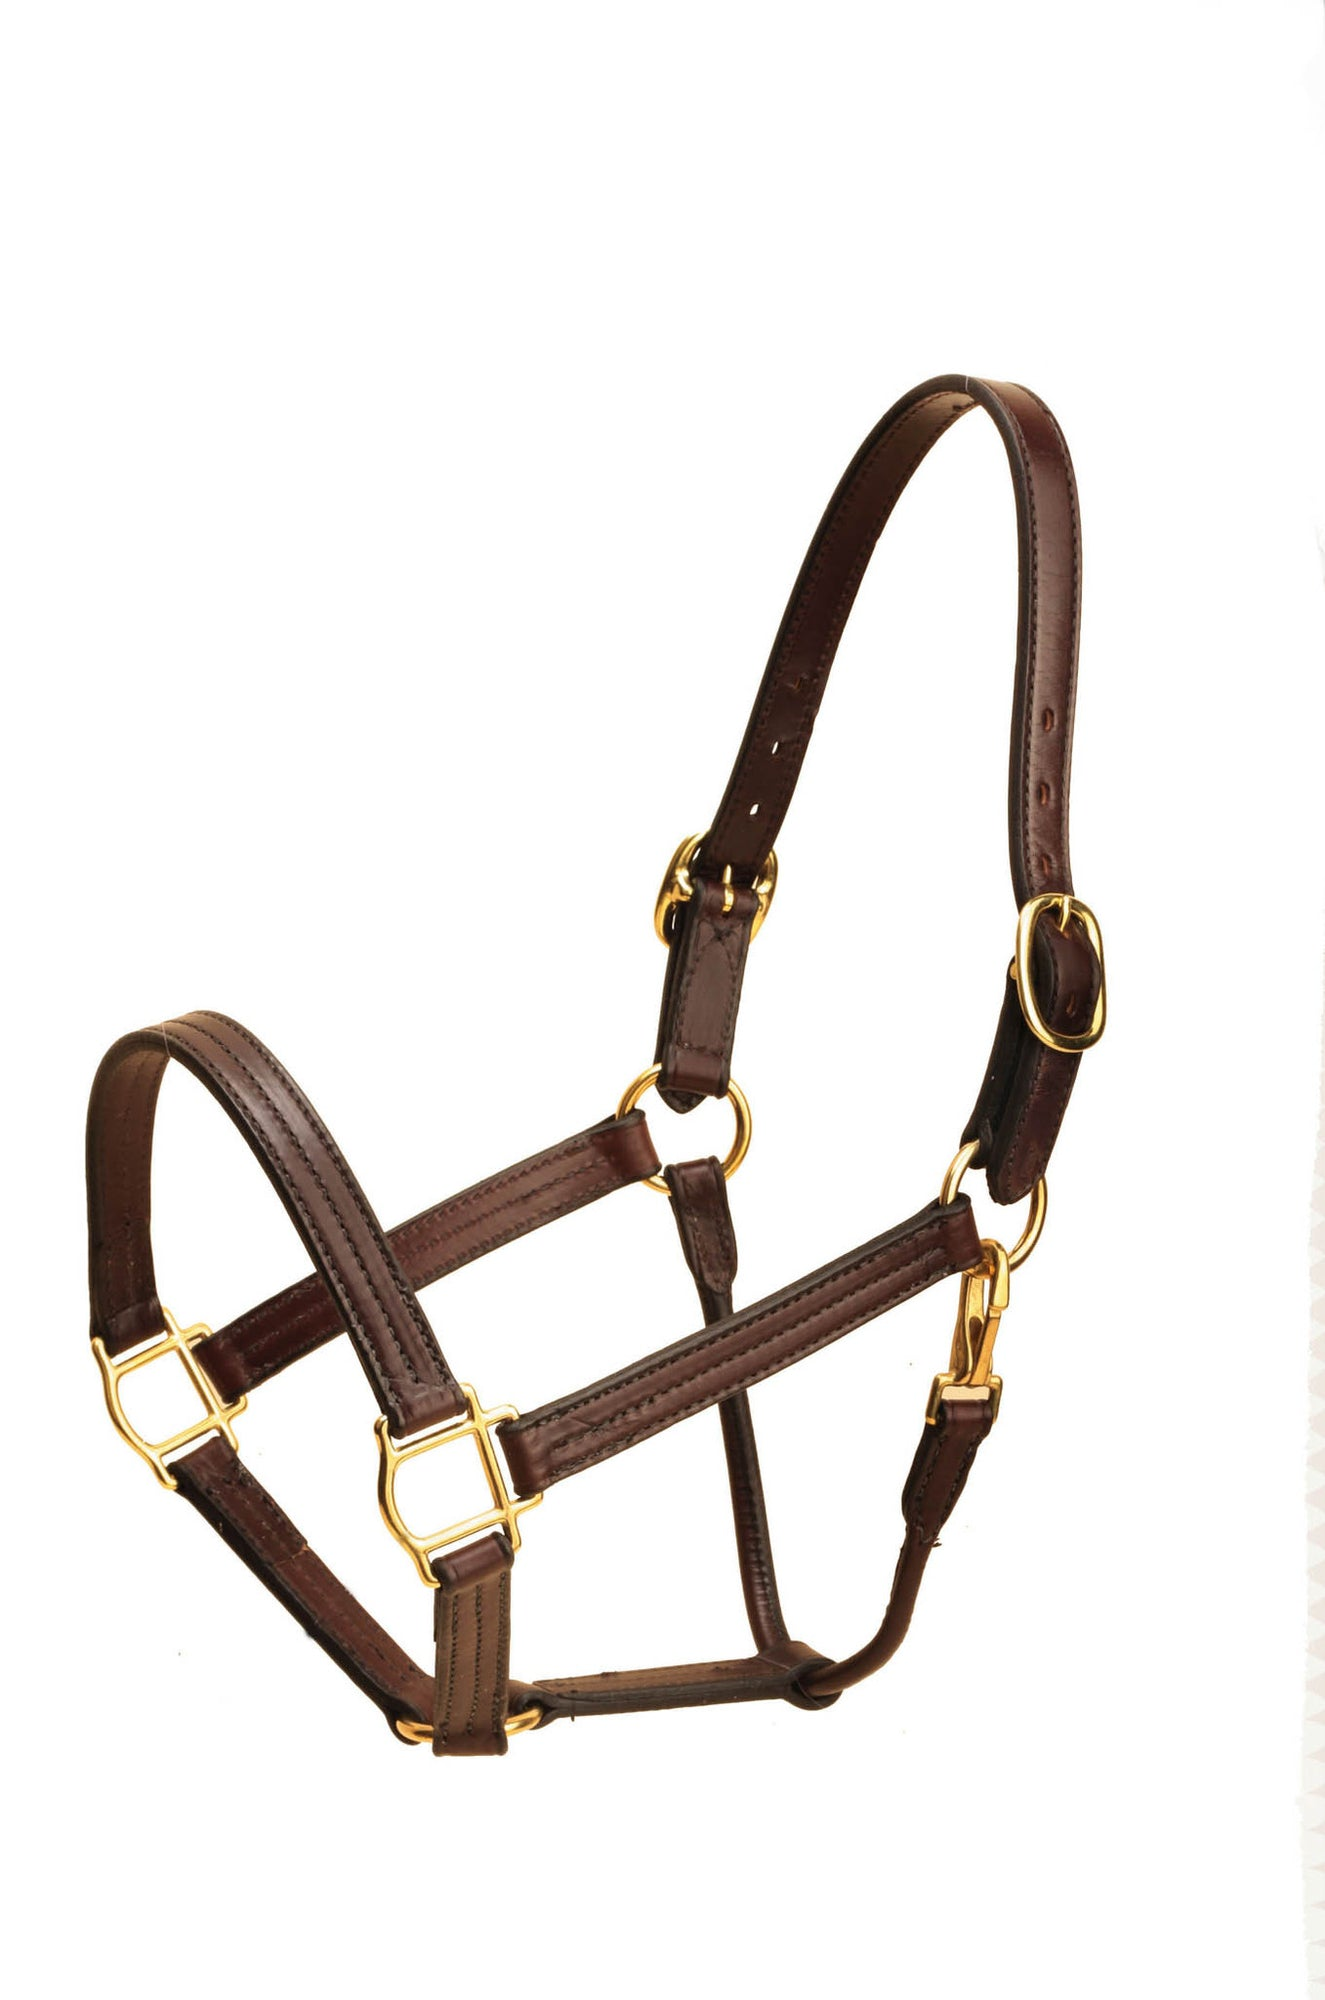 Tory Leather Horse Size Triple Stitched Halter,Snap Throat Fixed Nose